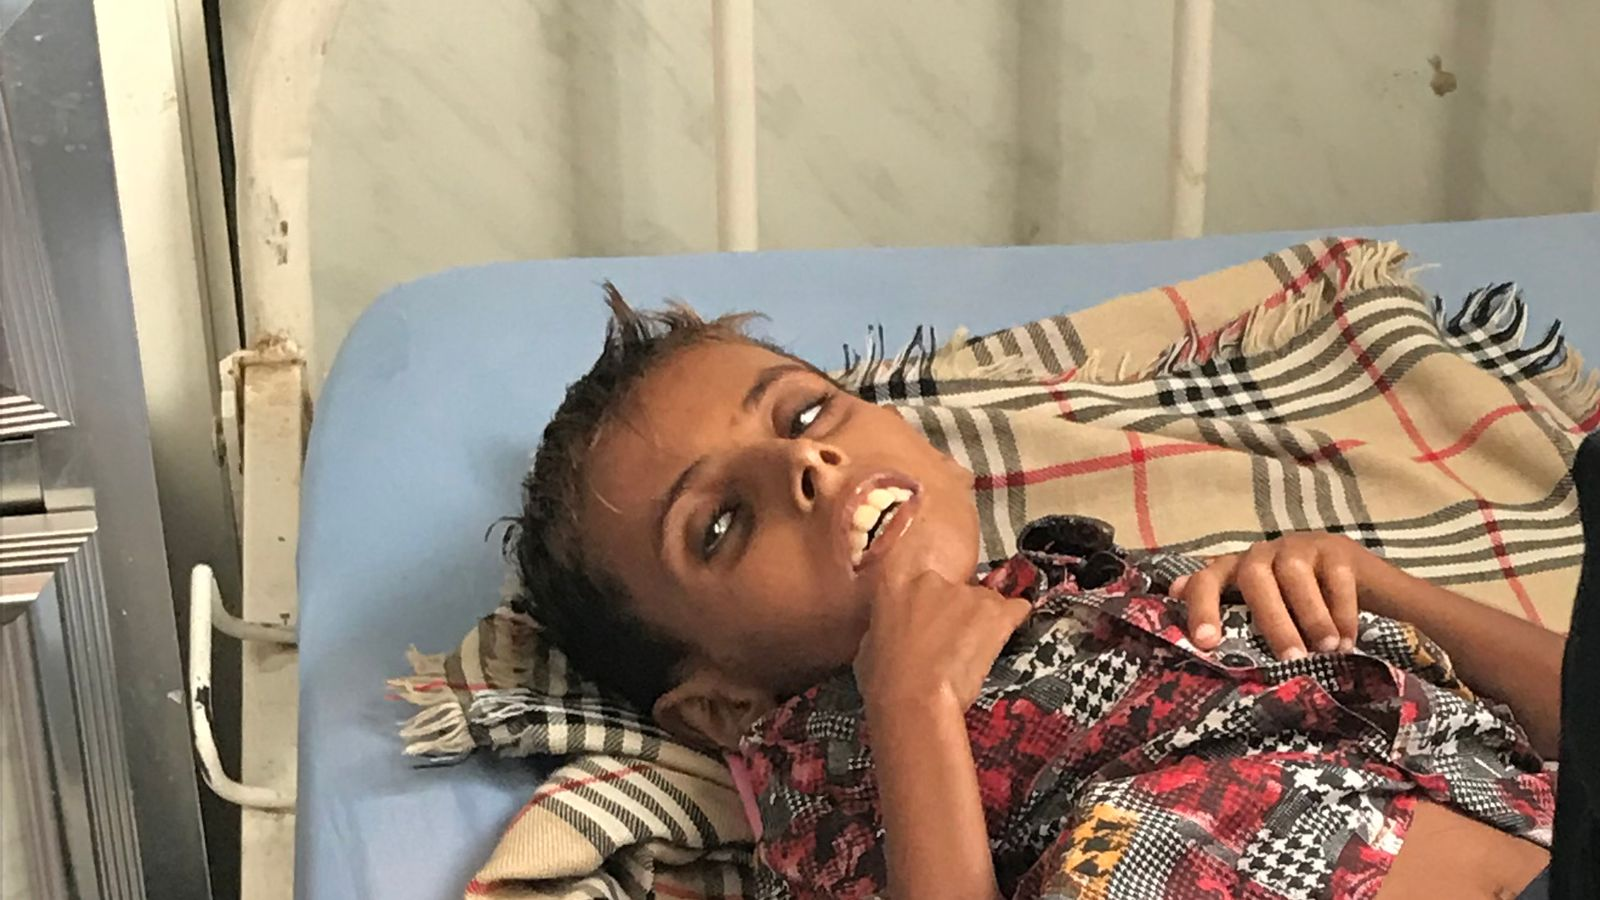 Yemen: The 10-year-old boy who weighs just 22lbs in a country on the brink of famine